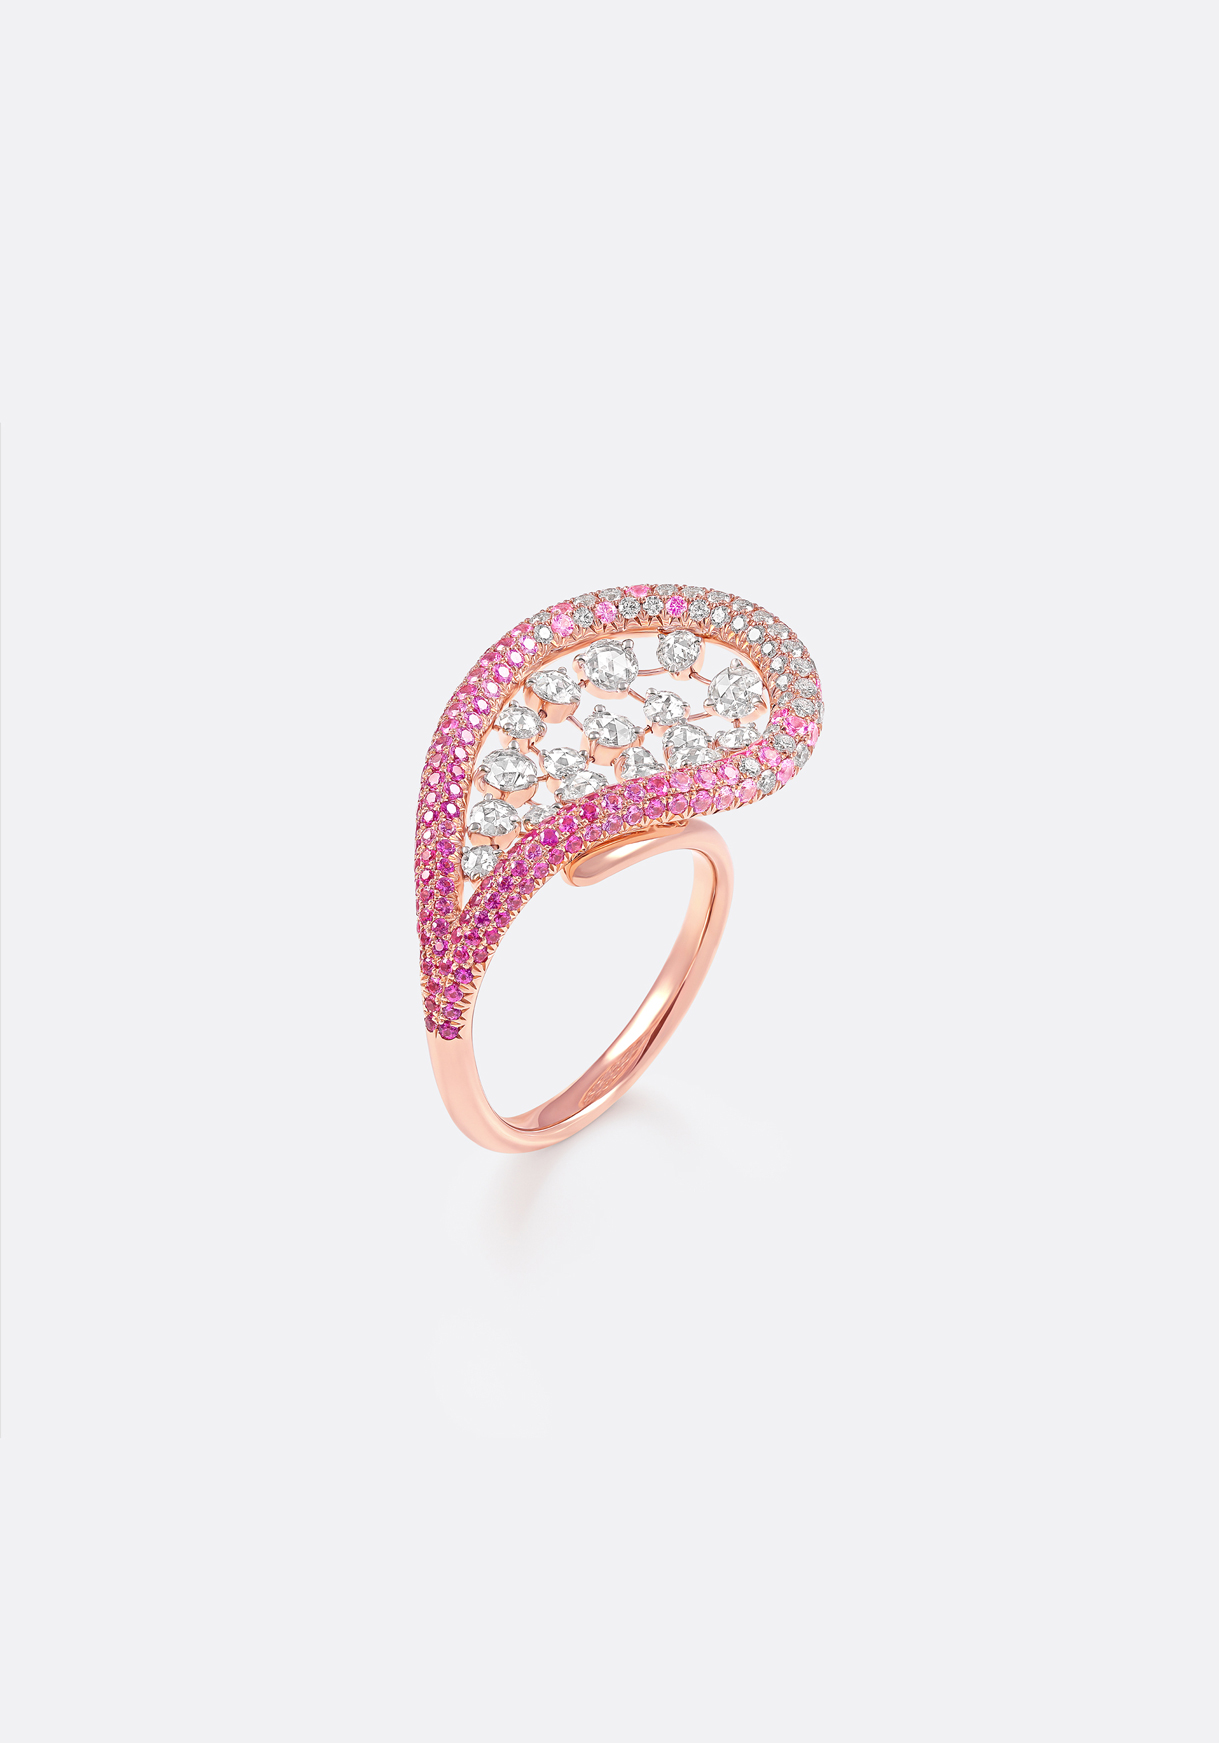 Ring - three-dimensional rose-gold jewels pavé-set with ombré pink sapphires.